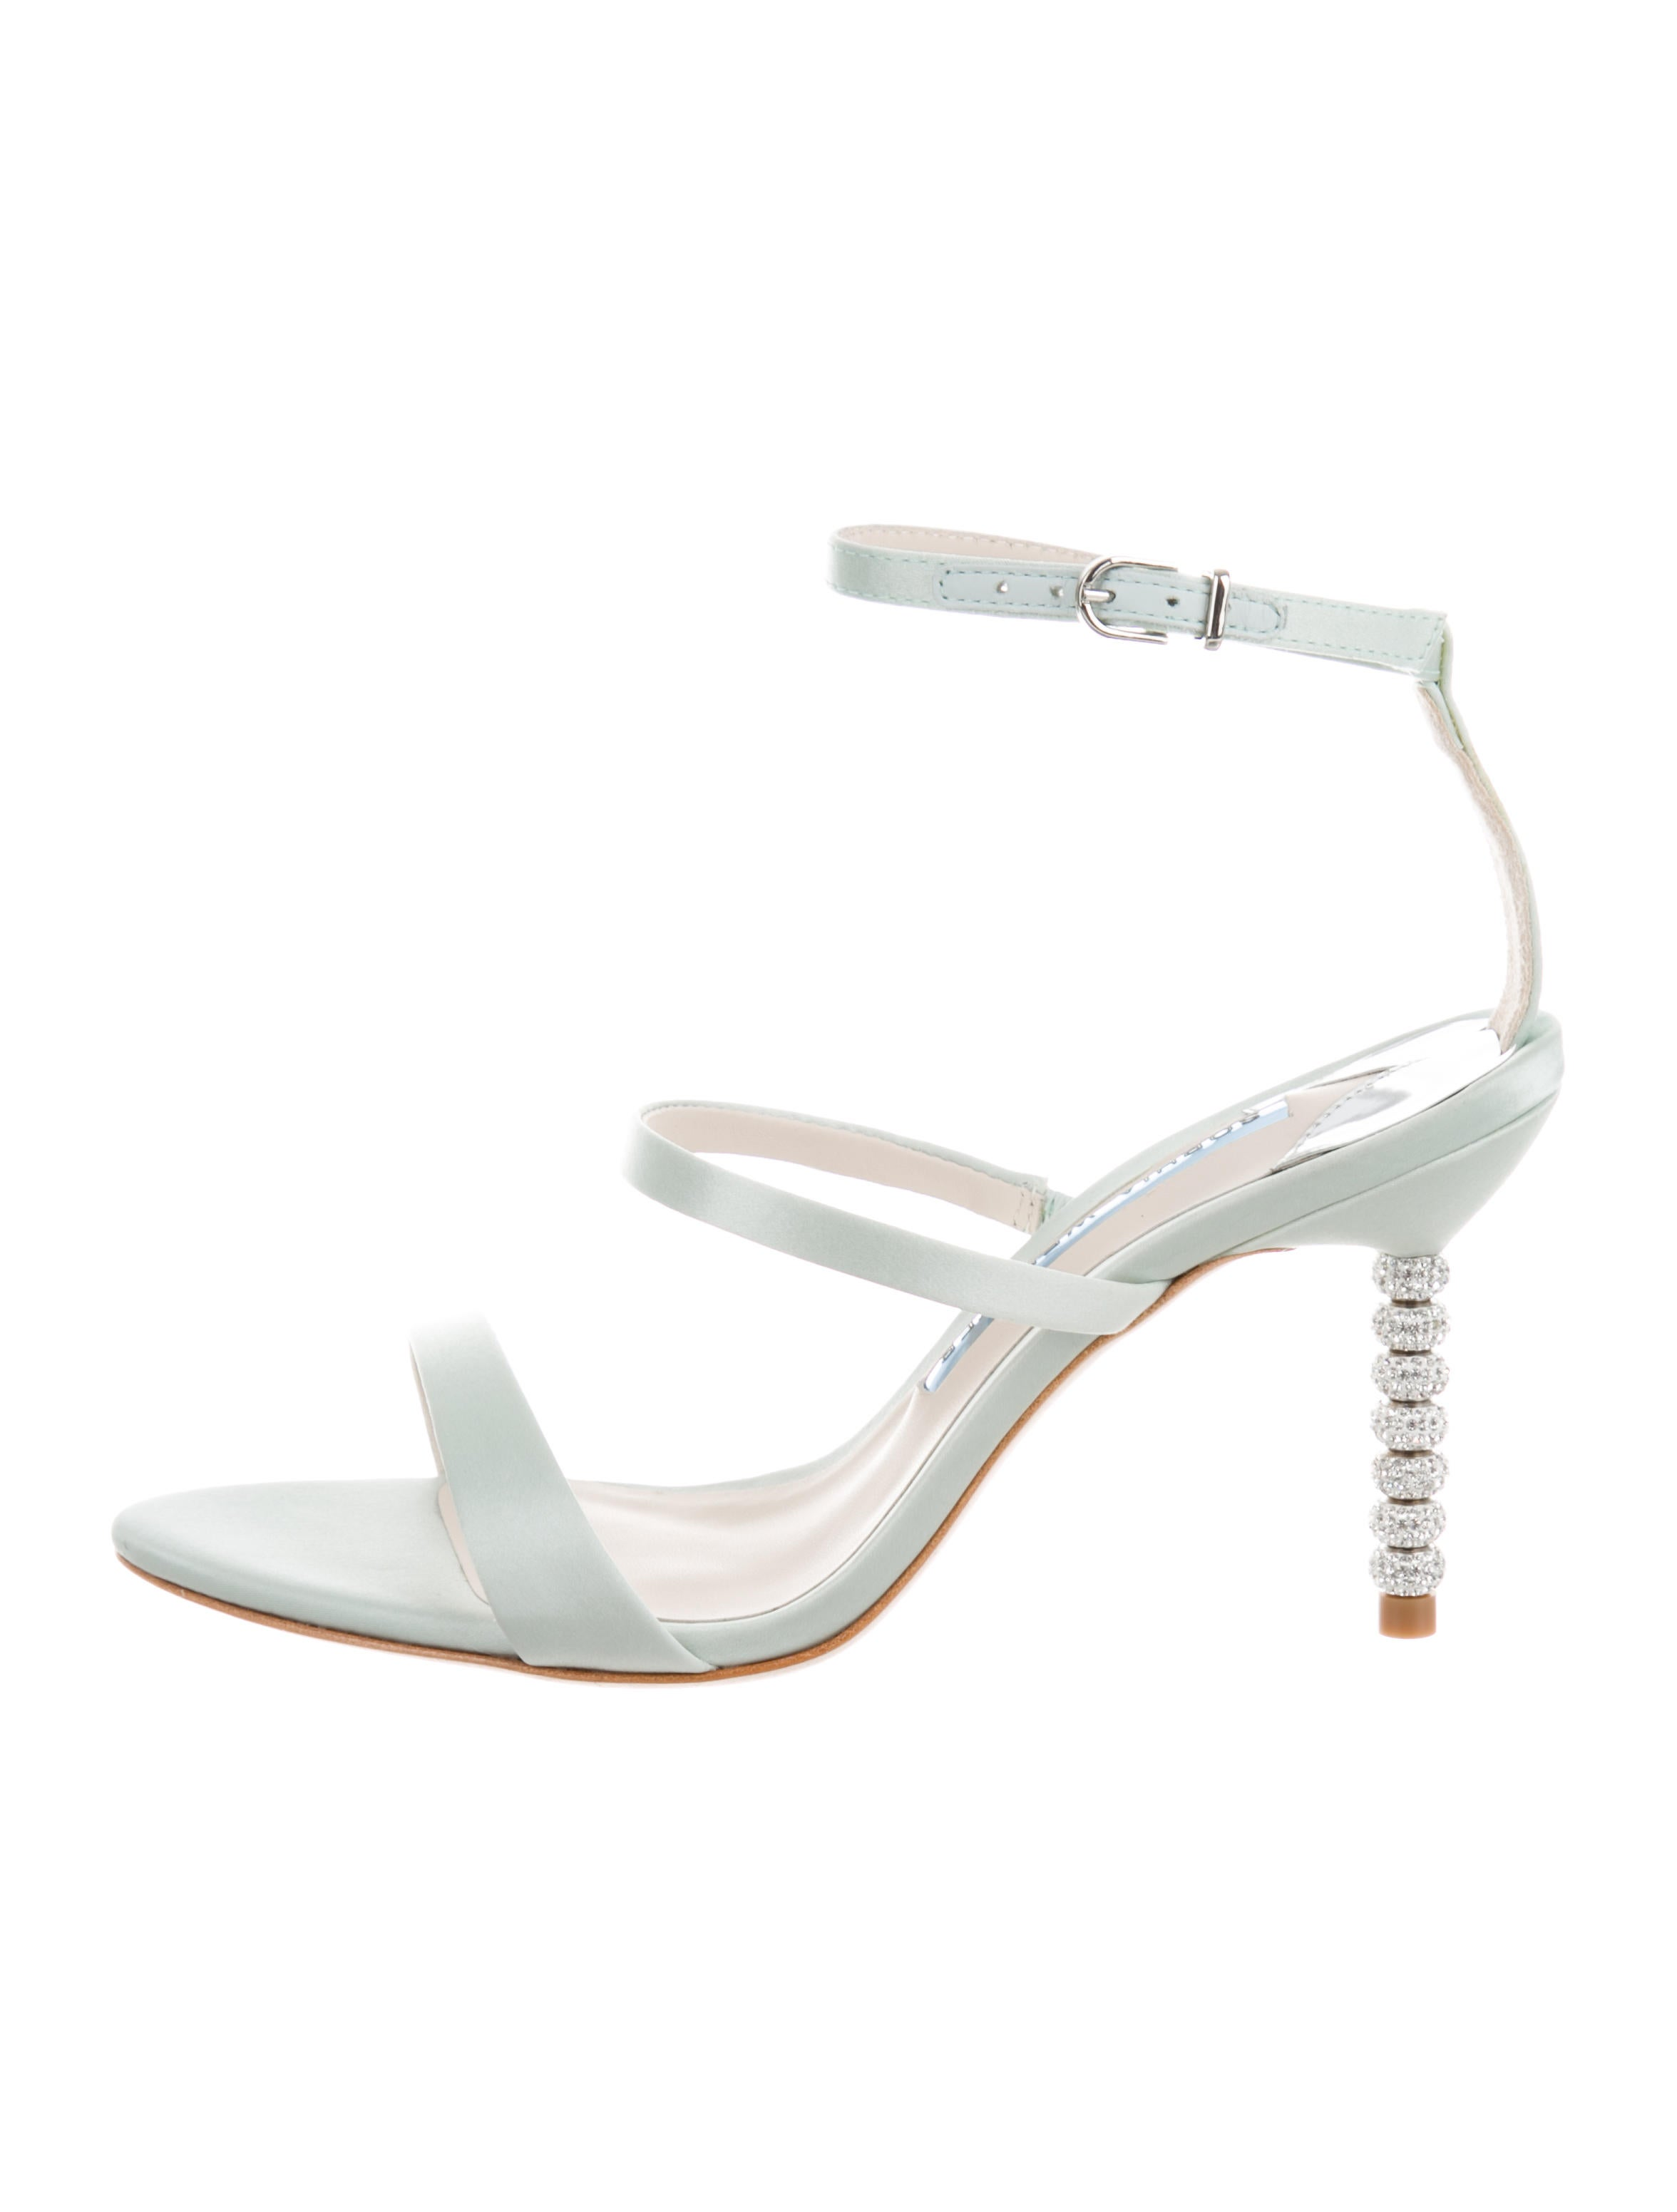 Sophia Webster Rosalind Embellished Sandals w/ Tags very cheap sale online discount get to buy outlet fake cheap outlet store bCfZoz